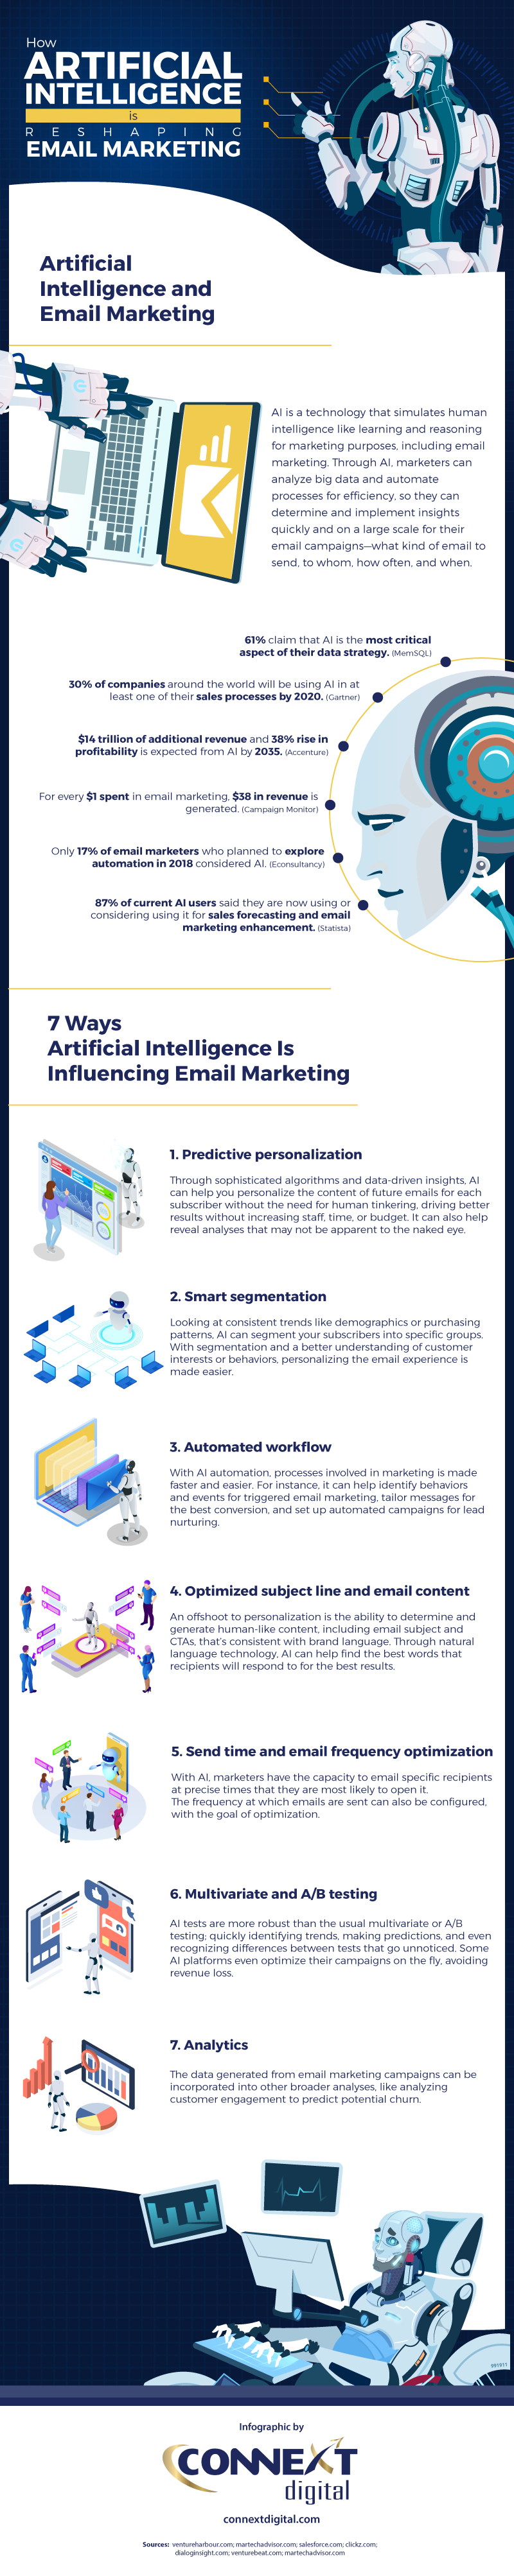 Infographic: Artificial Intelligence's Effect On Email Marketing